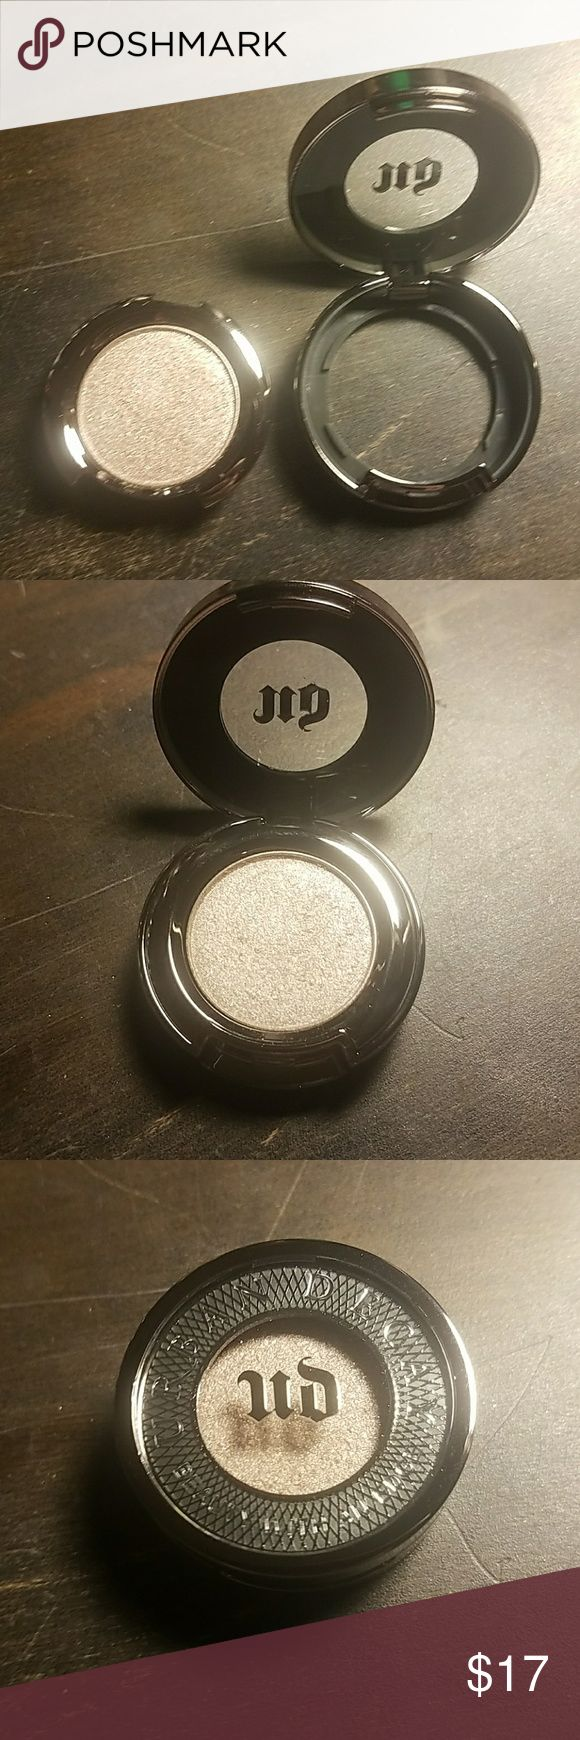 Urban Decay - Midnight Cowboy Rides Again Pale beige with silver glitter - Shimmer - Vegan - Sparkle (Lightly used) Urban Decay Makeup Eyeshadow